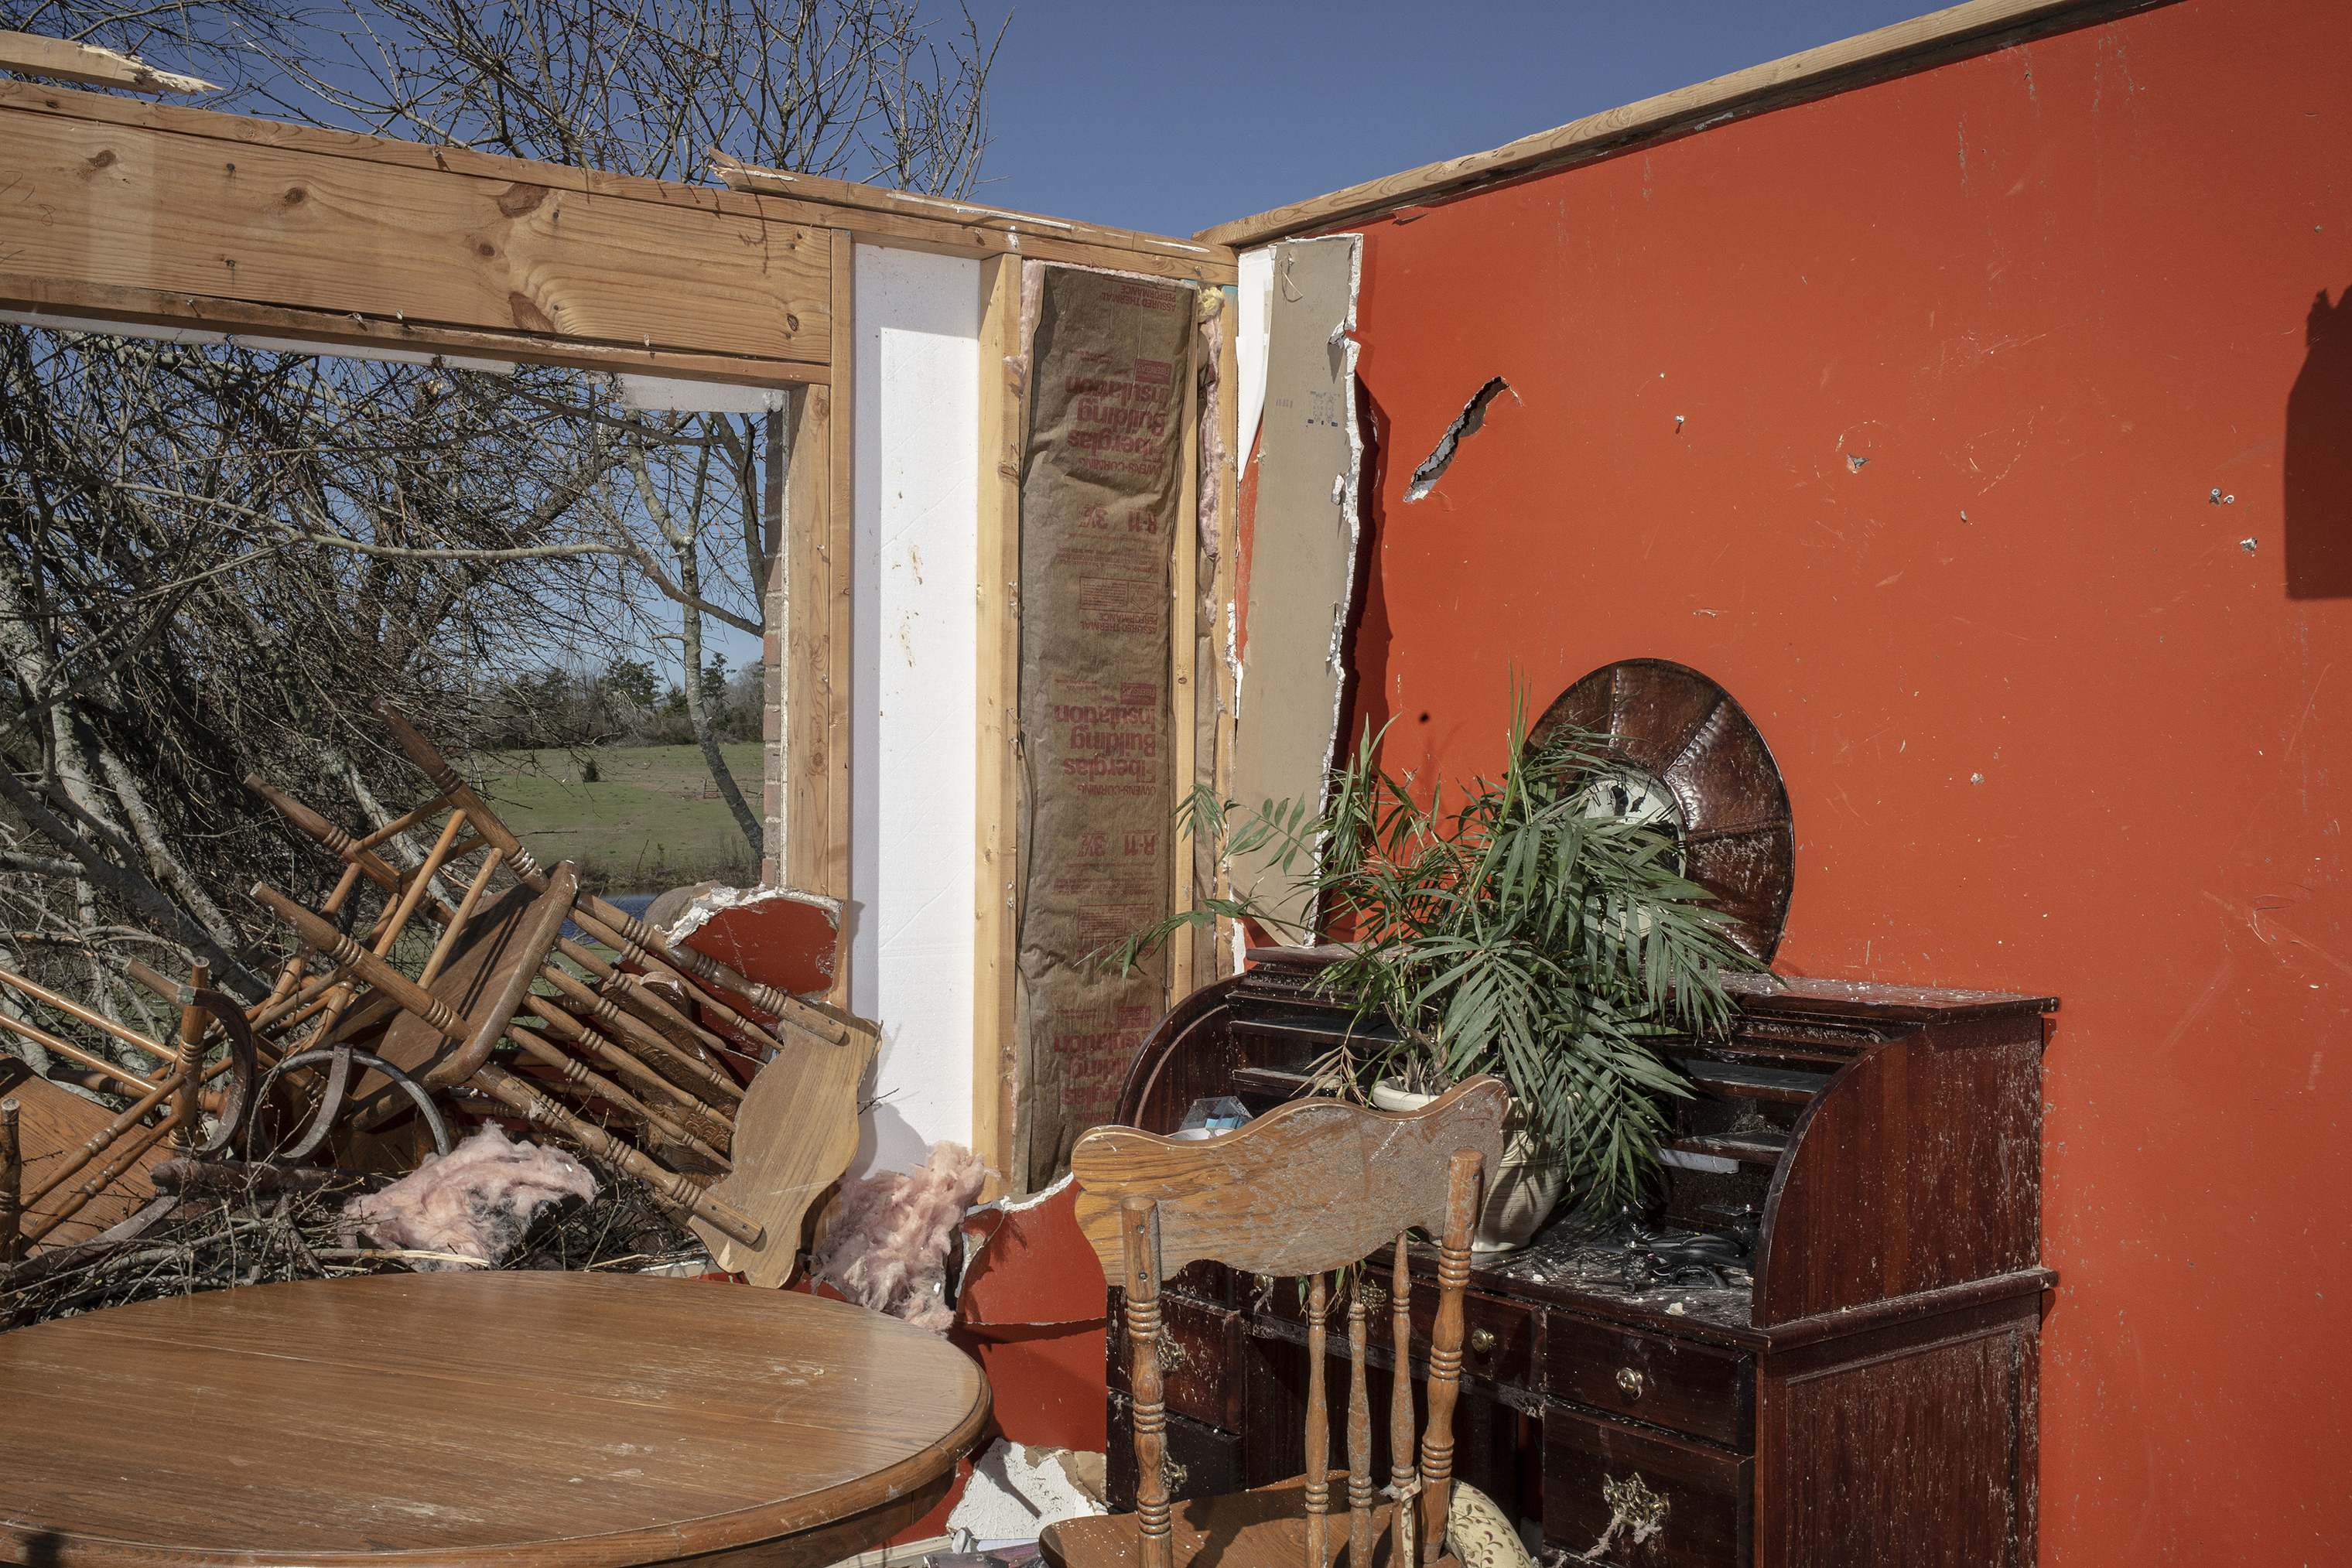 The Mattocks' dining room after a tornado passed over, killing several people and destroying homes in Beauregard, Alabama on March 4, 2019.